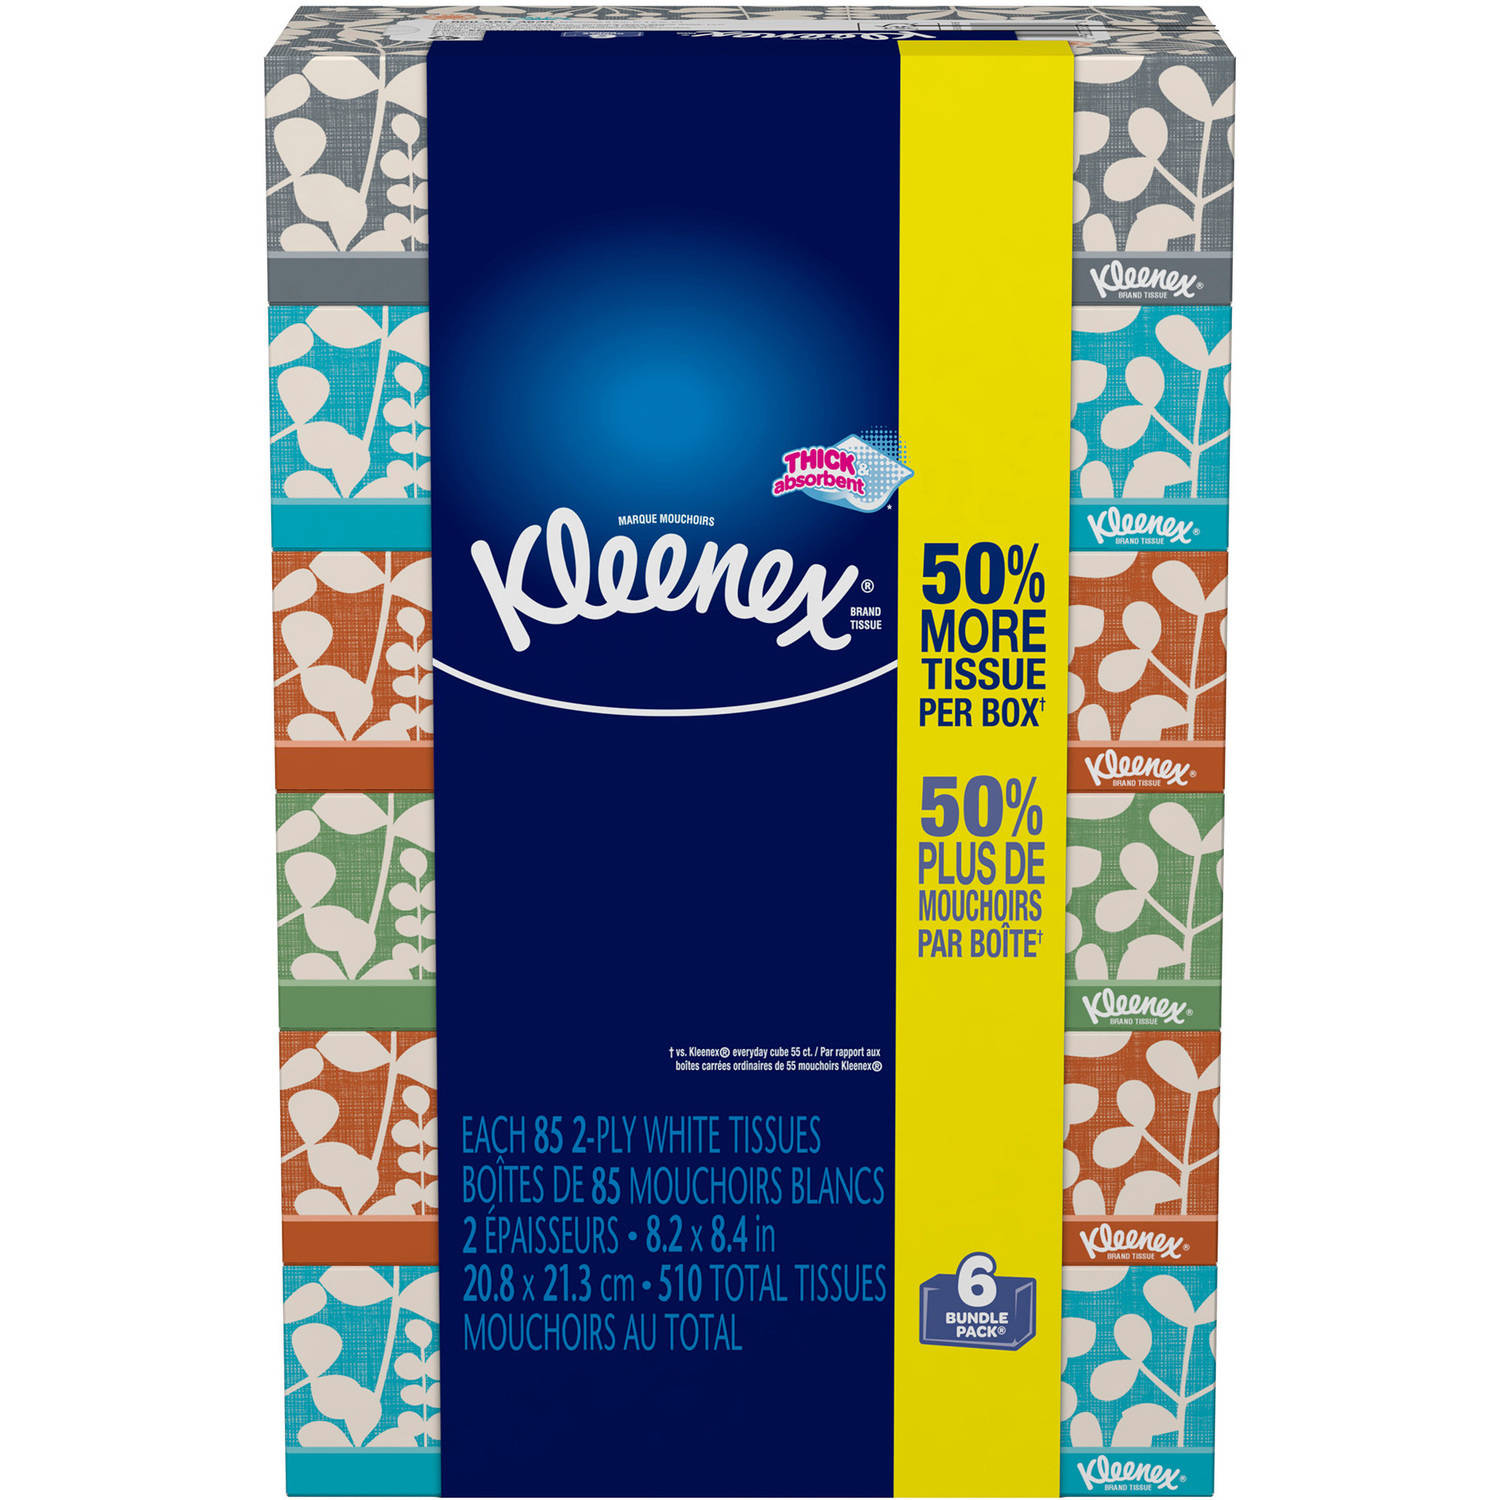 Kleenex Facial Tissues, Everyday, 85 Sheets, Pack of 6 (Designs May Vary)